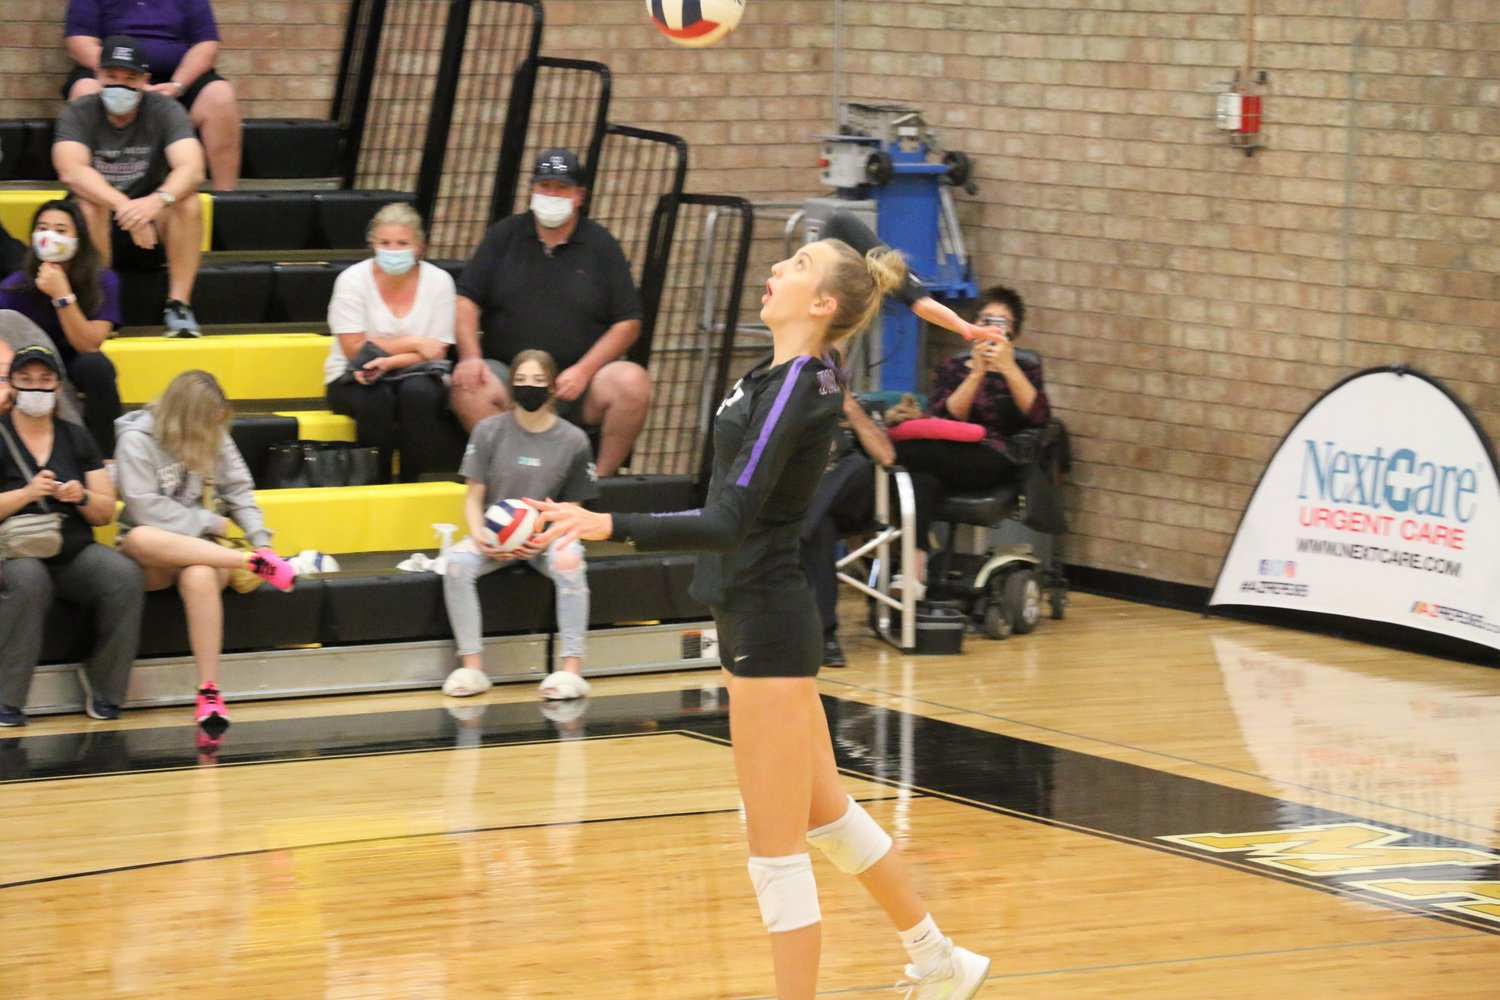 Northwest Christian senior middle blocker Reagan Hope prepares to serve during the state 3A volleyball final Nov. 21 at Marcos de Niza High School in Tempe.